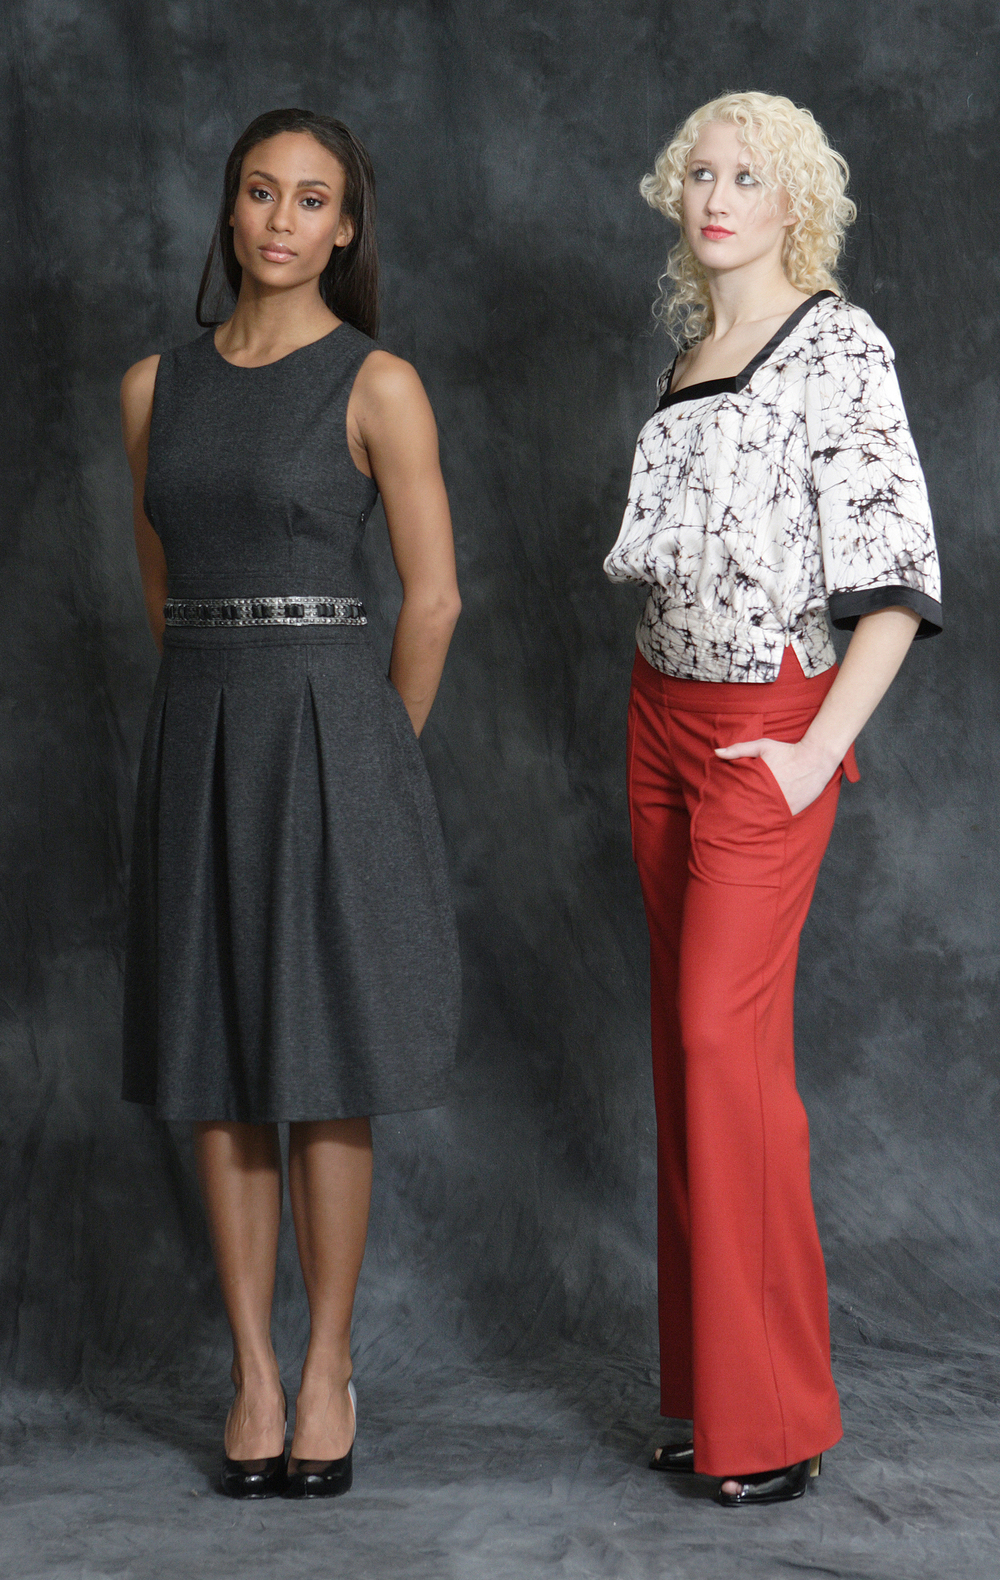 Wool Flannel High Waist Pleat Dress w/ Jeweled Trim  Web Print Silk Charmeuse Square Cut Blouse w/ Quilt Stitch Waist  Stretch Flannel Wide Leg Trouser w/ Quilt Stitch Waist.